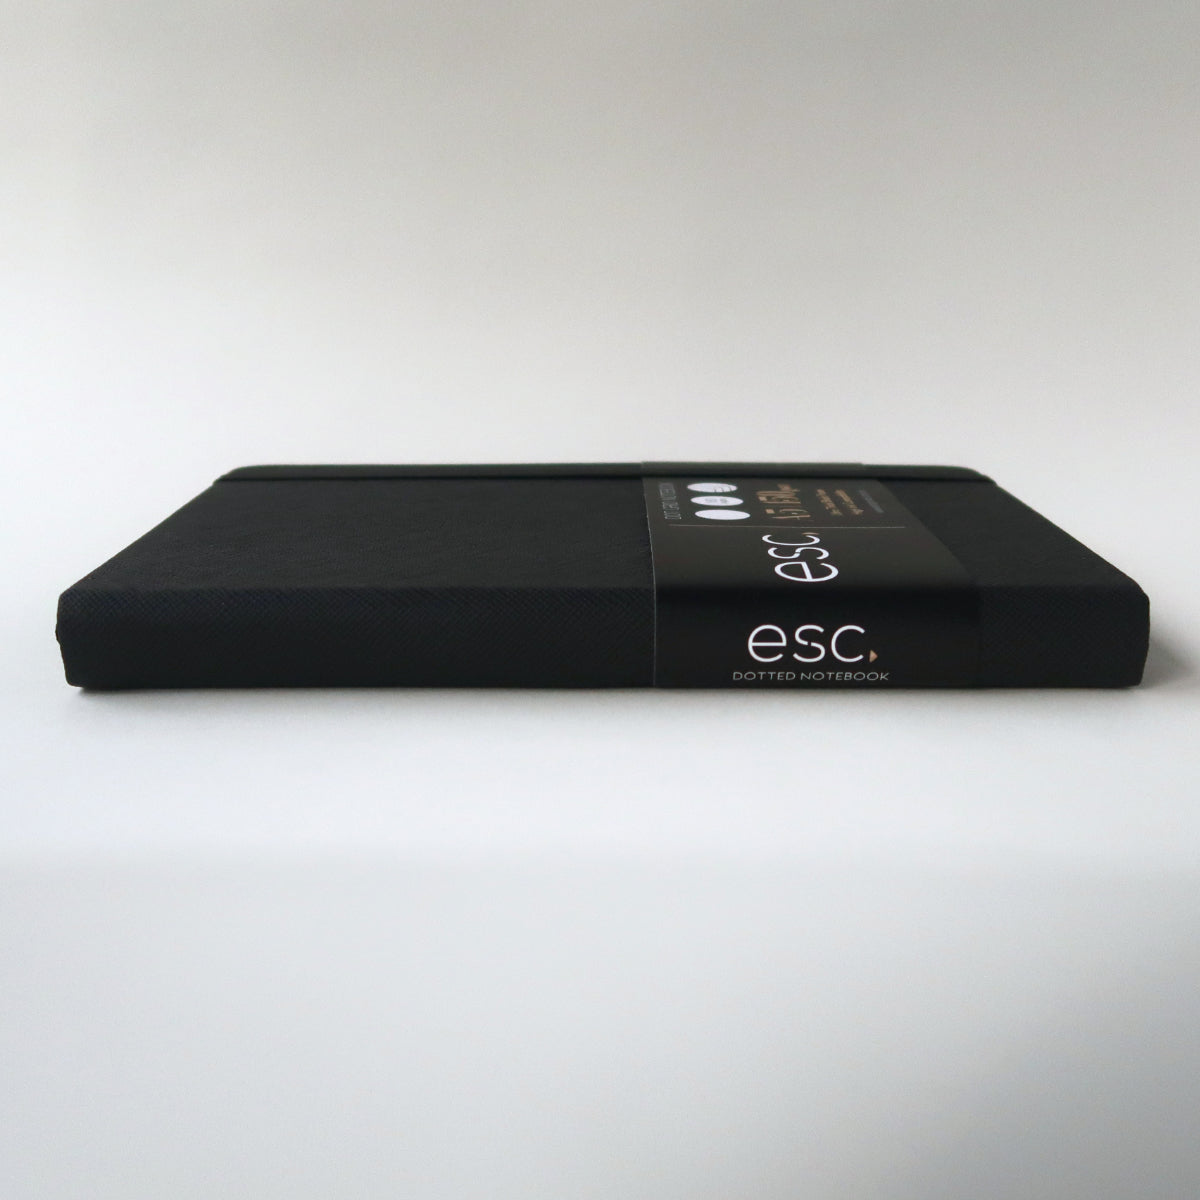 Esc. Goods Dark Mode Notebook Side View. A5, 150 gsm, black paper, high ink compatibility. Saffiano Leather.